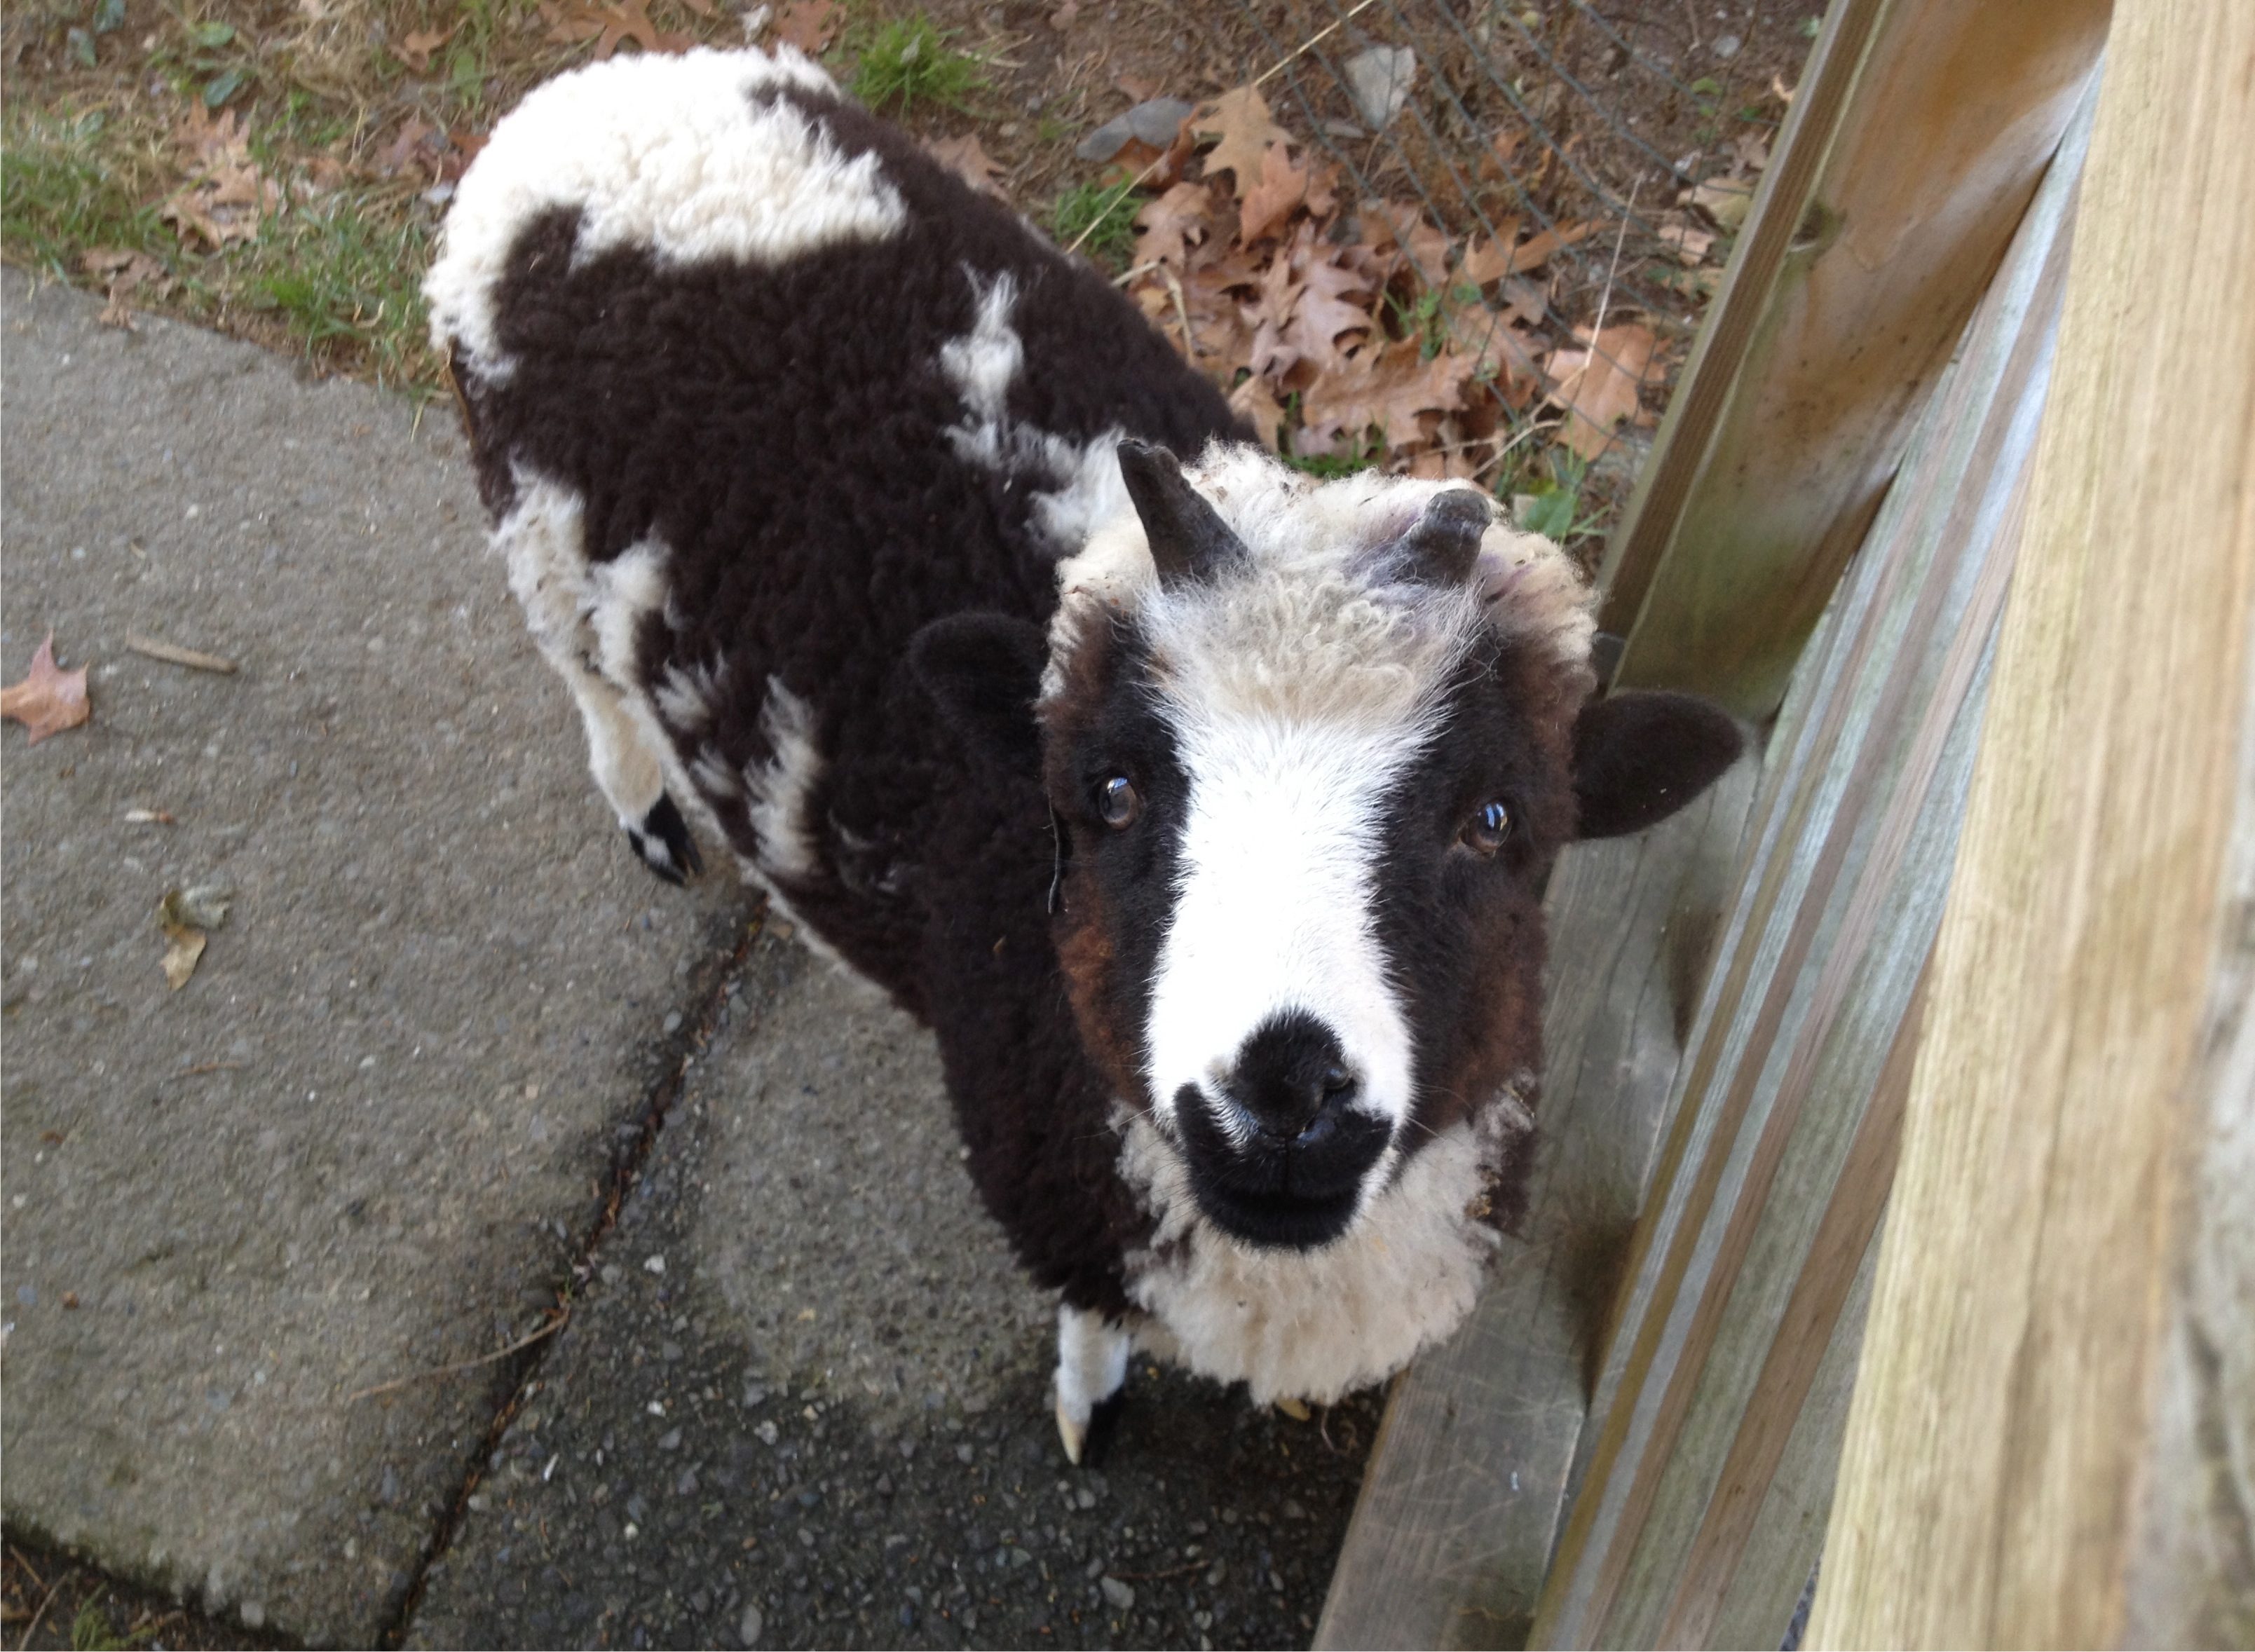 A lamb looking earnestly at the camera.